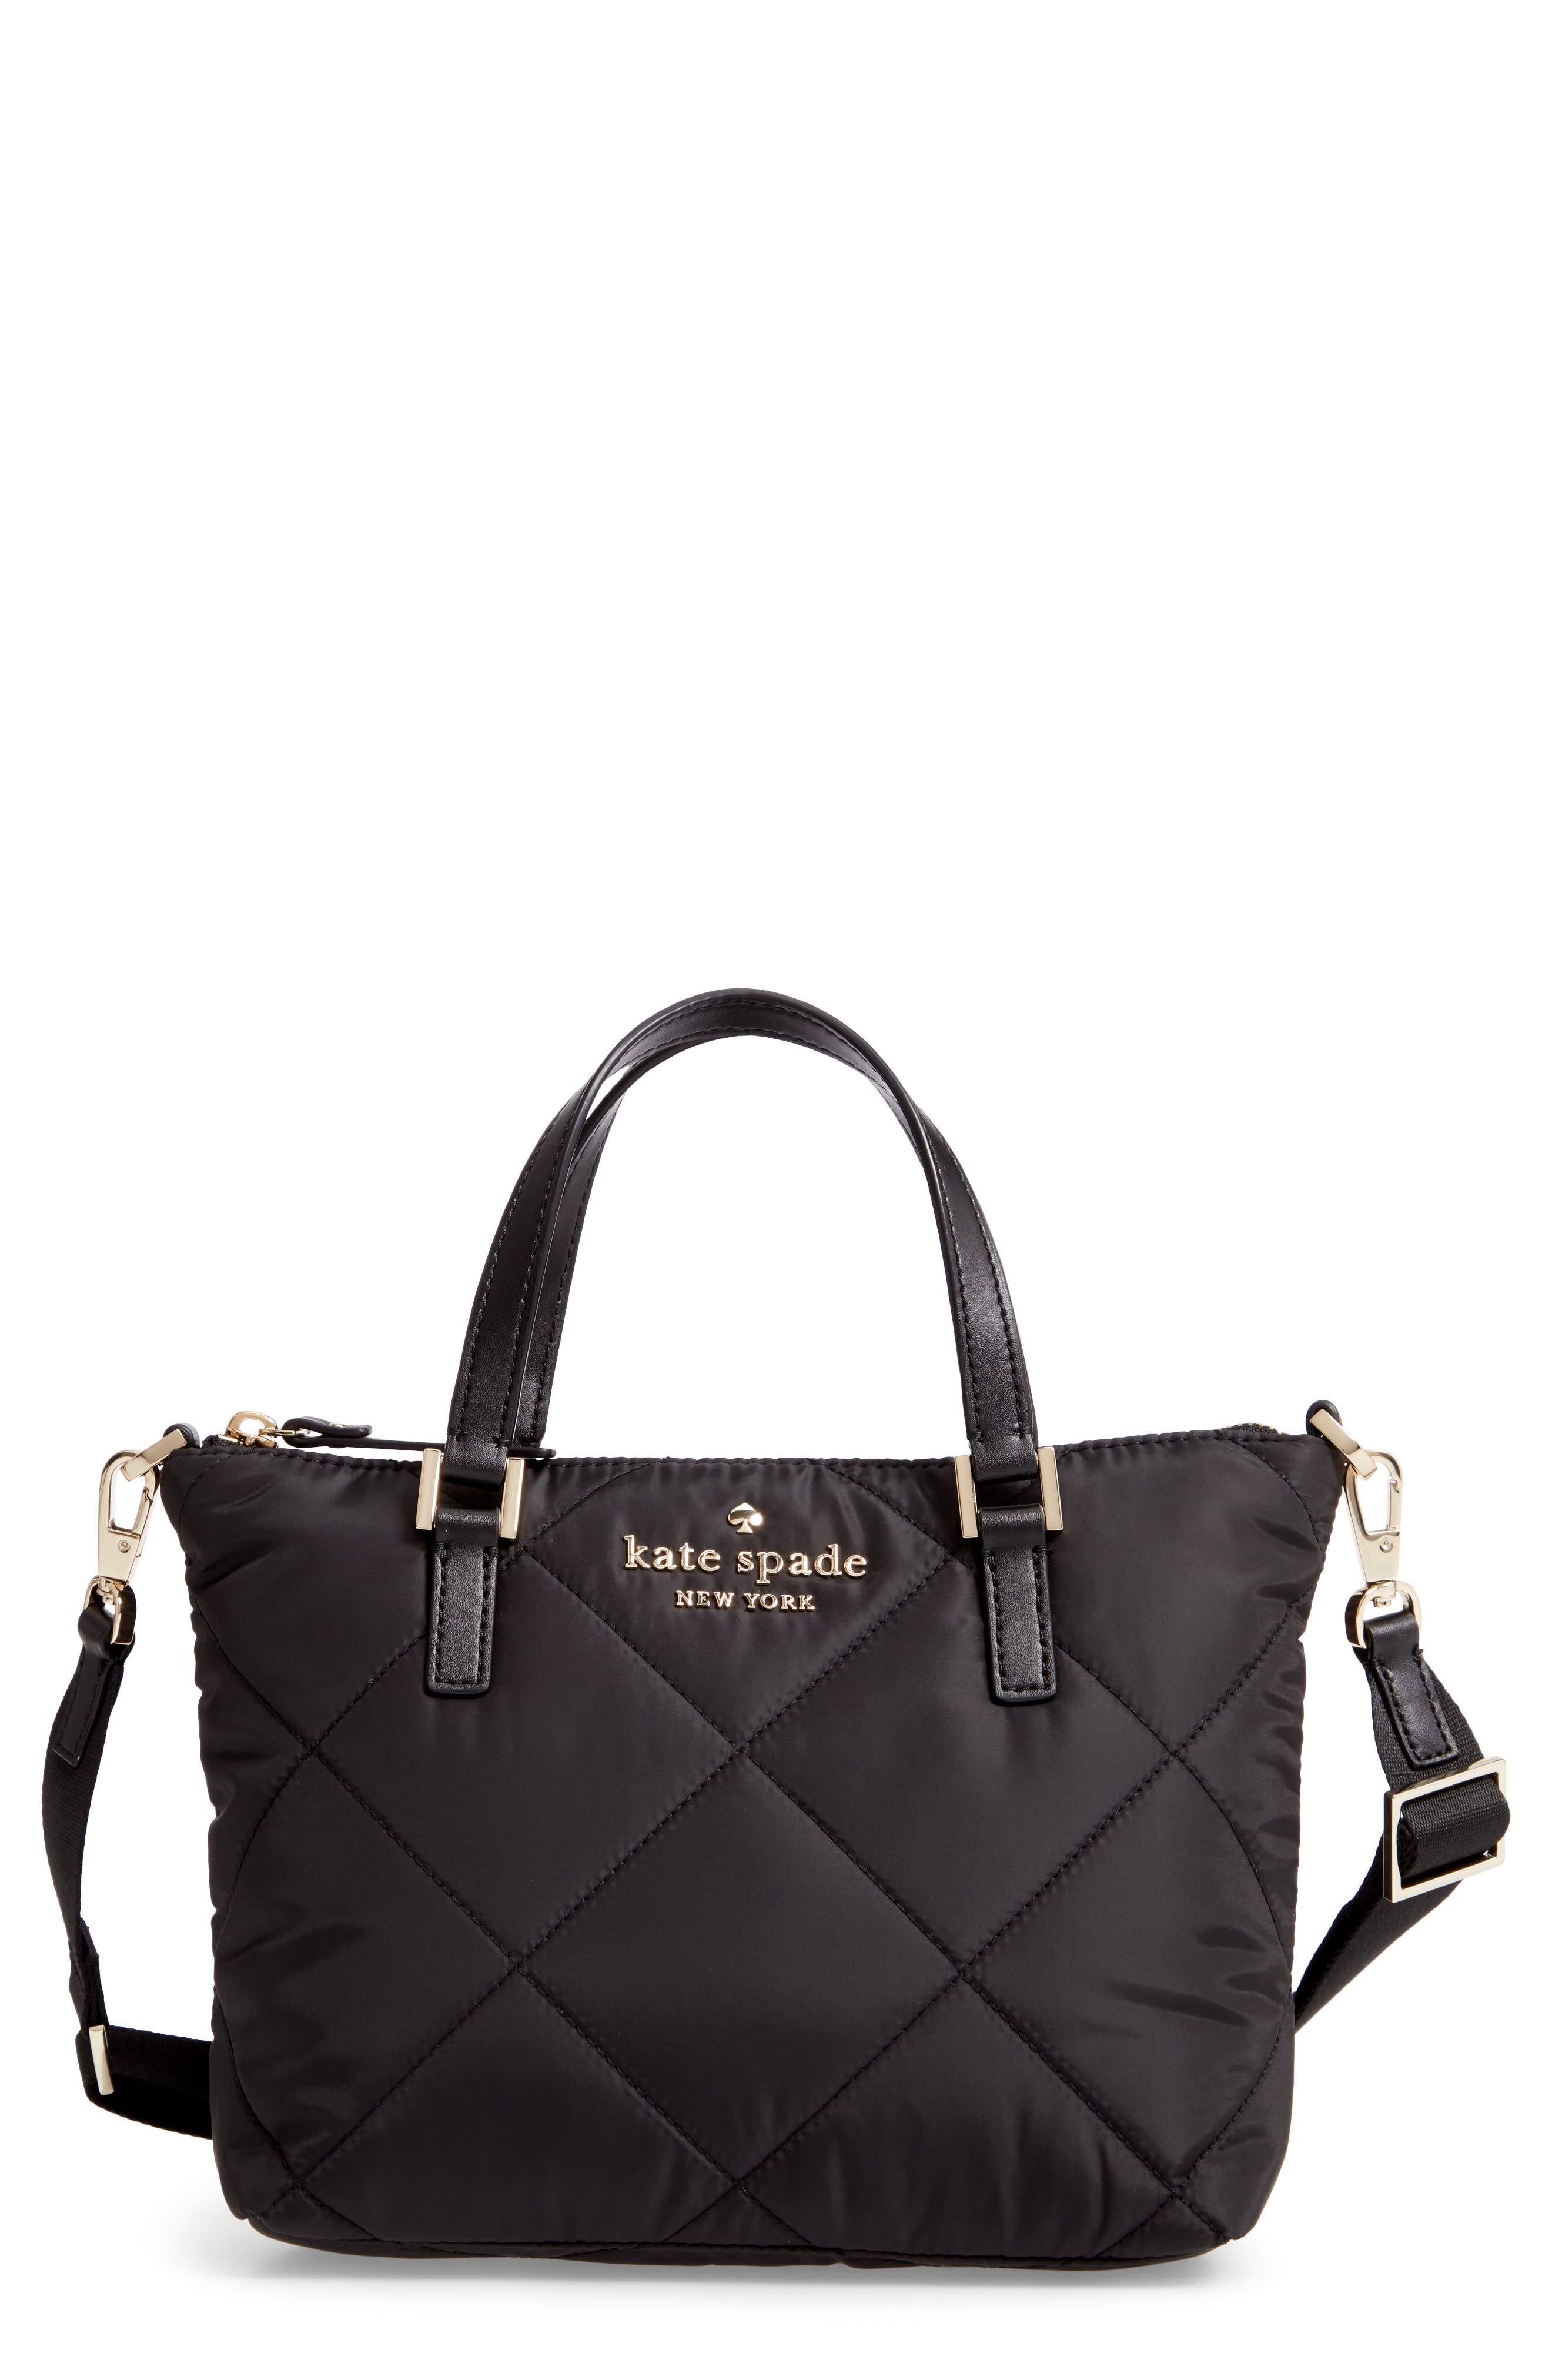 watson lane - quilted lucie crossbody bag,                             Main thumbnail 1, color,                             001